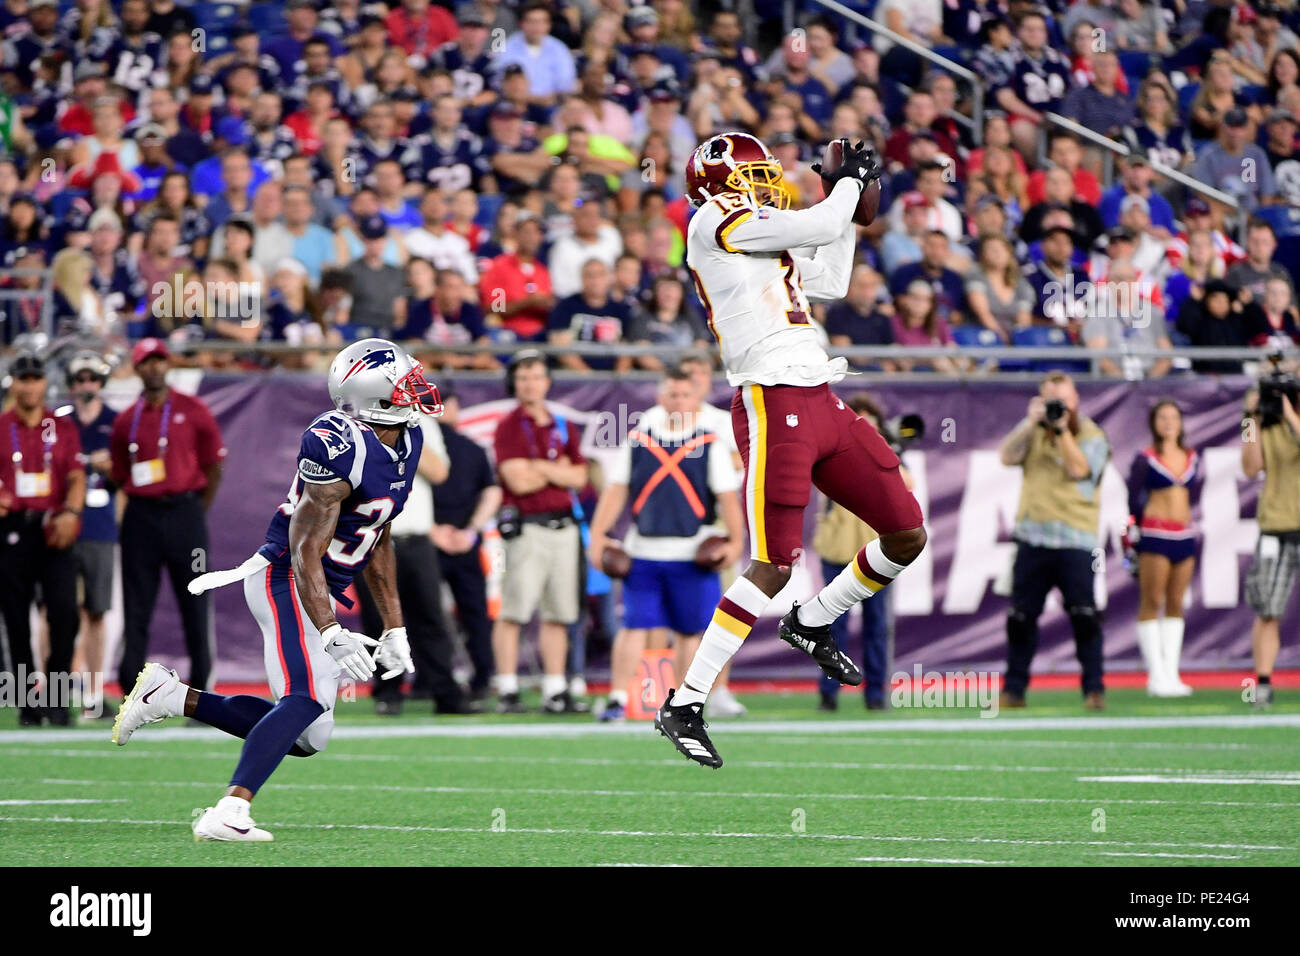 c724e671287 August 9, 2018: Washington Redskins wide receiver Robert Davis (19) catches  the ball during the NFL pre-season football game between the Washington  Redskins ...